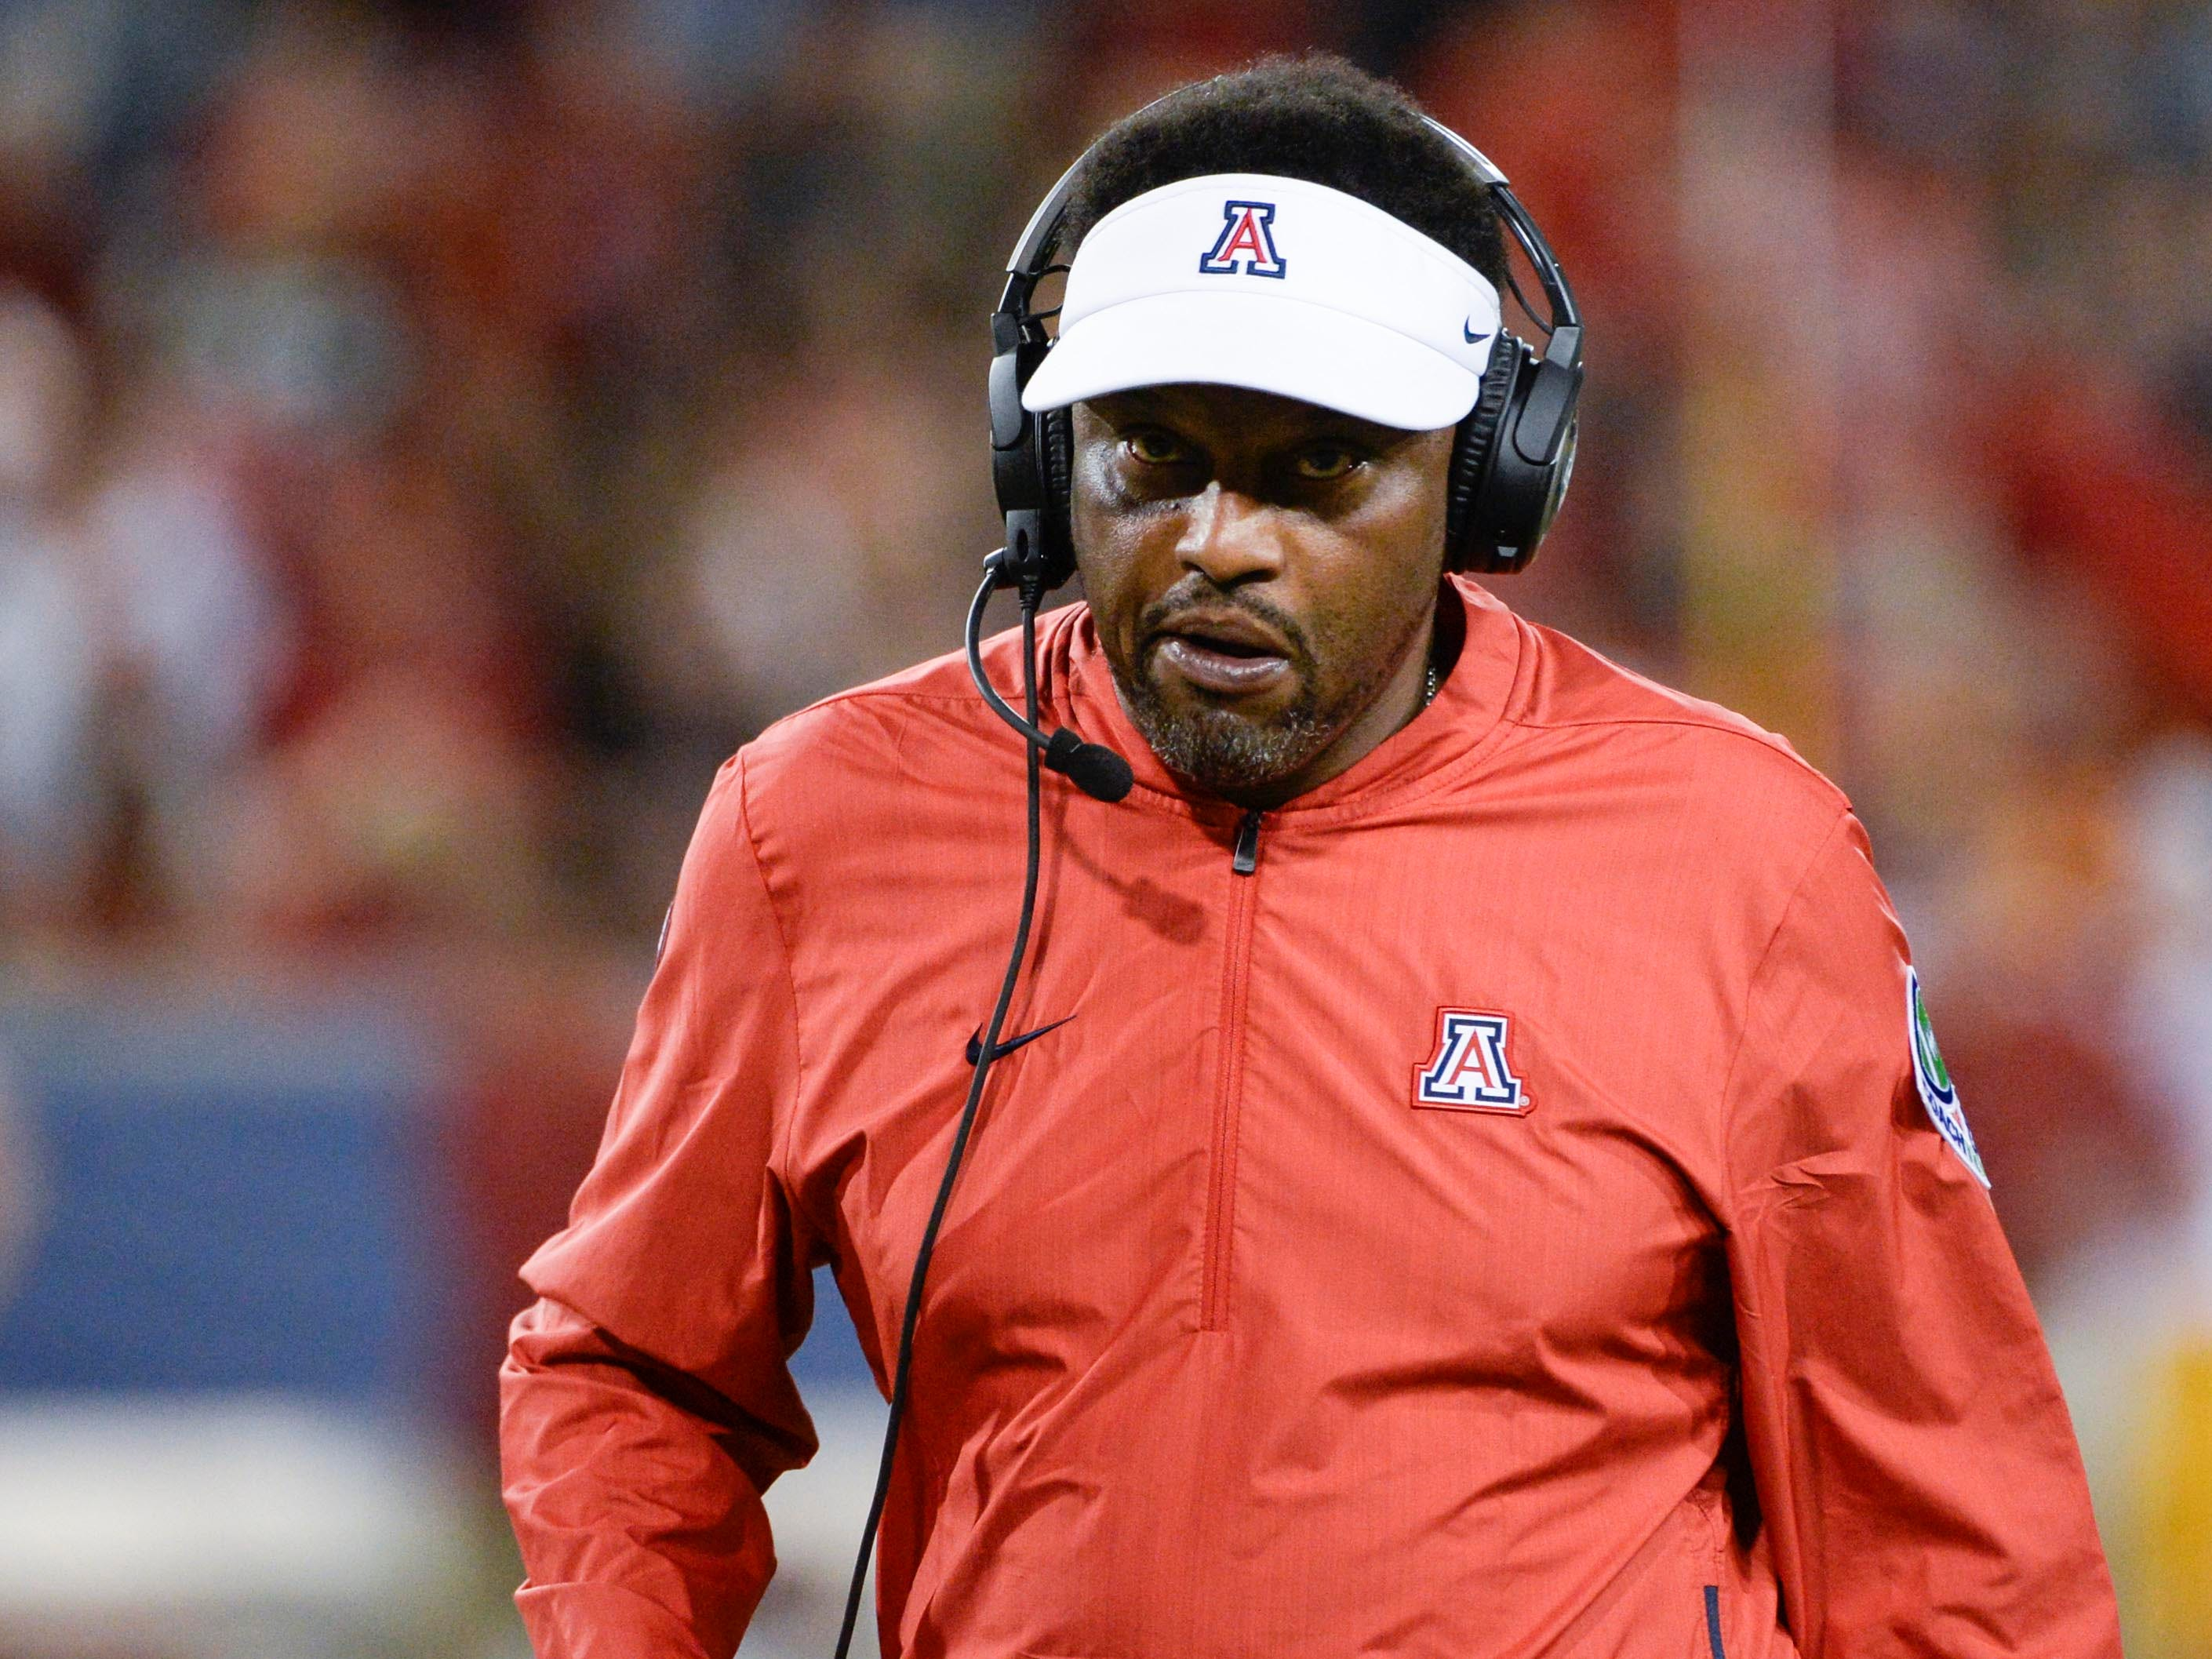 Sep 29, 2018; Tucson, AZ, USA; Arizona Wildcats head coach Kevin Sumlin walks on the sideline during the second half against the Southern California Trojans at Arizona Stadium. Mandatory Credit: Casey Sapio-USA TODAY Sports